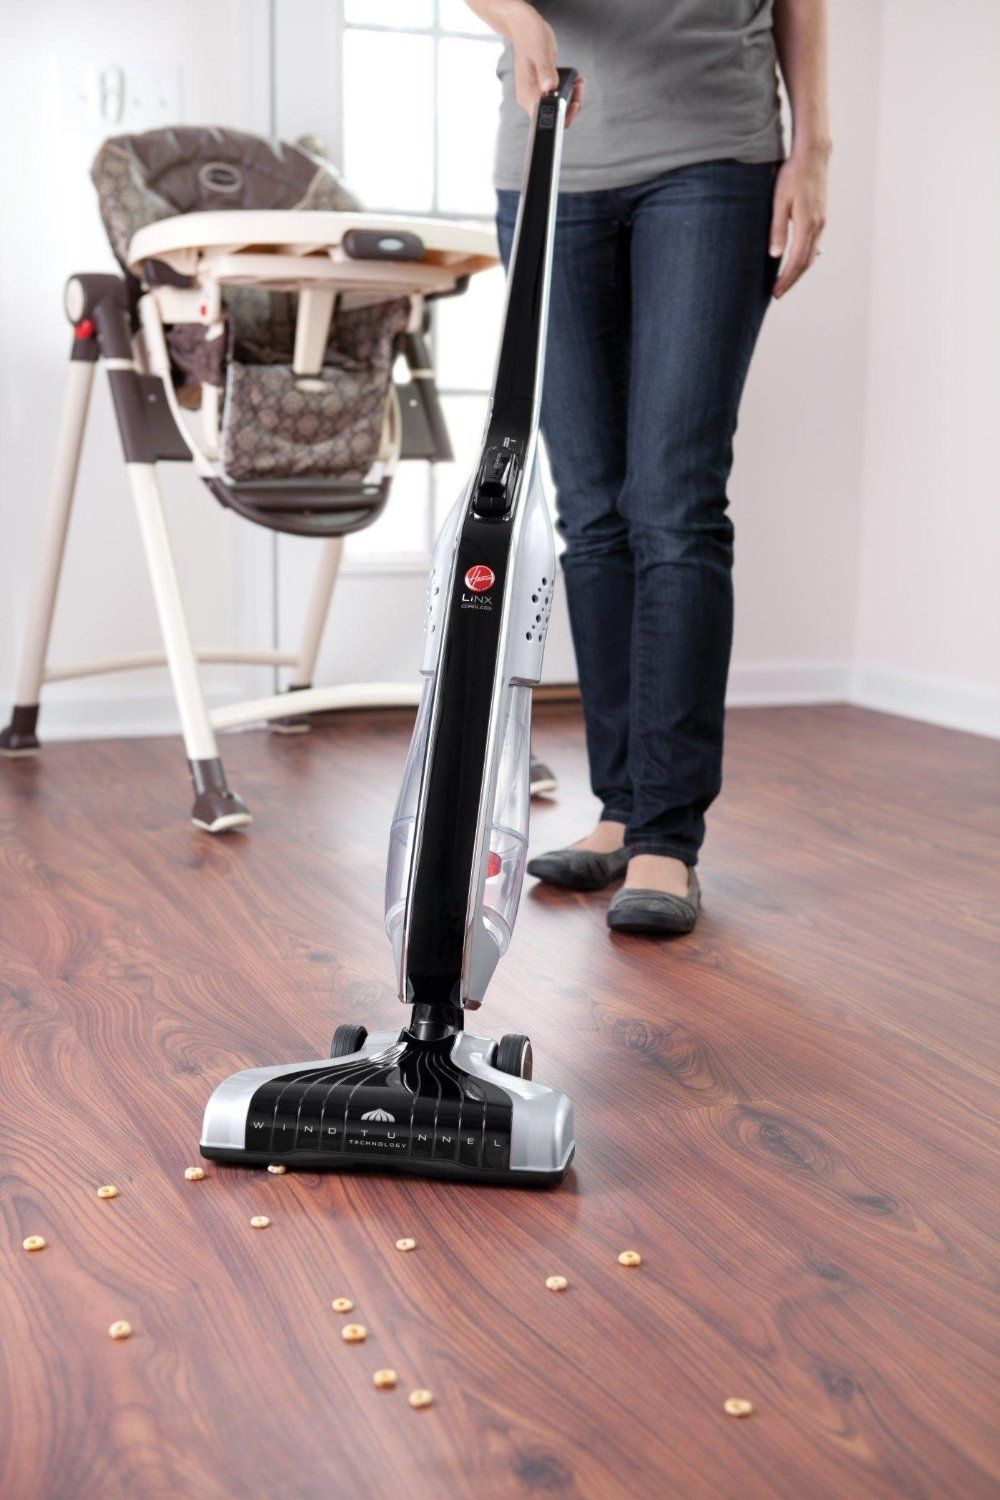 Best Electric Sweeper For Hardwood Floors Electric Broom Stick Vacuum Cordless Stick Vacuum Cleaner